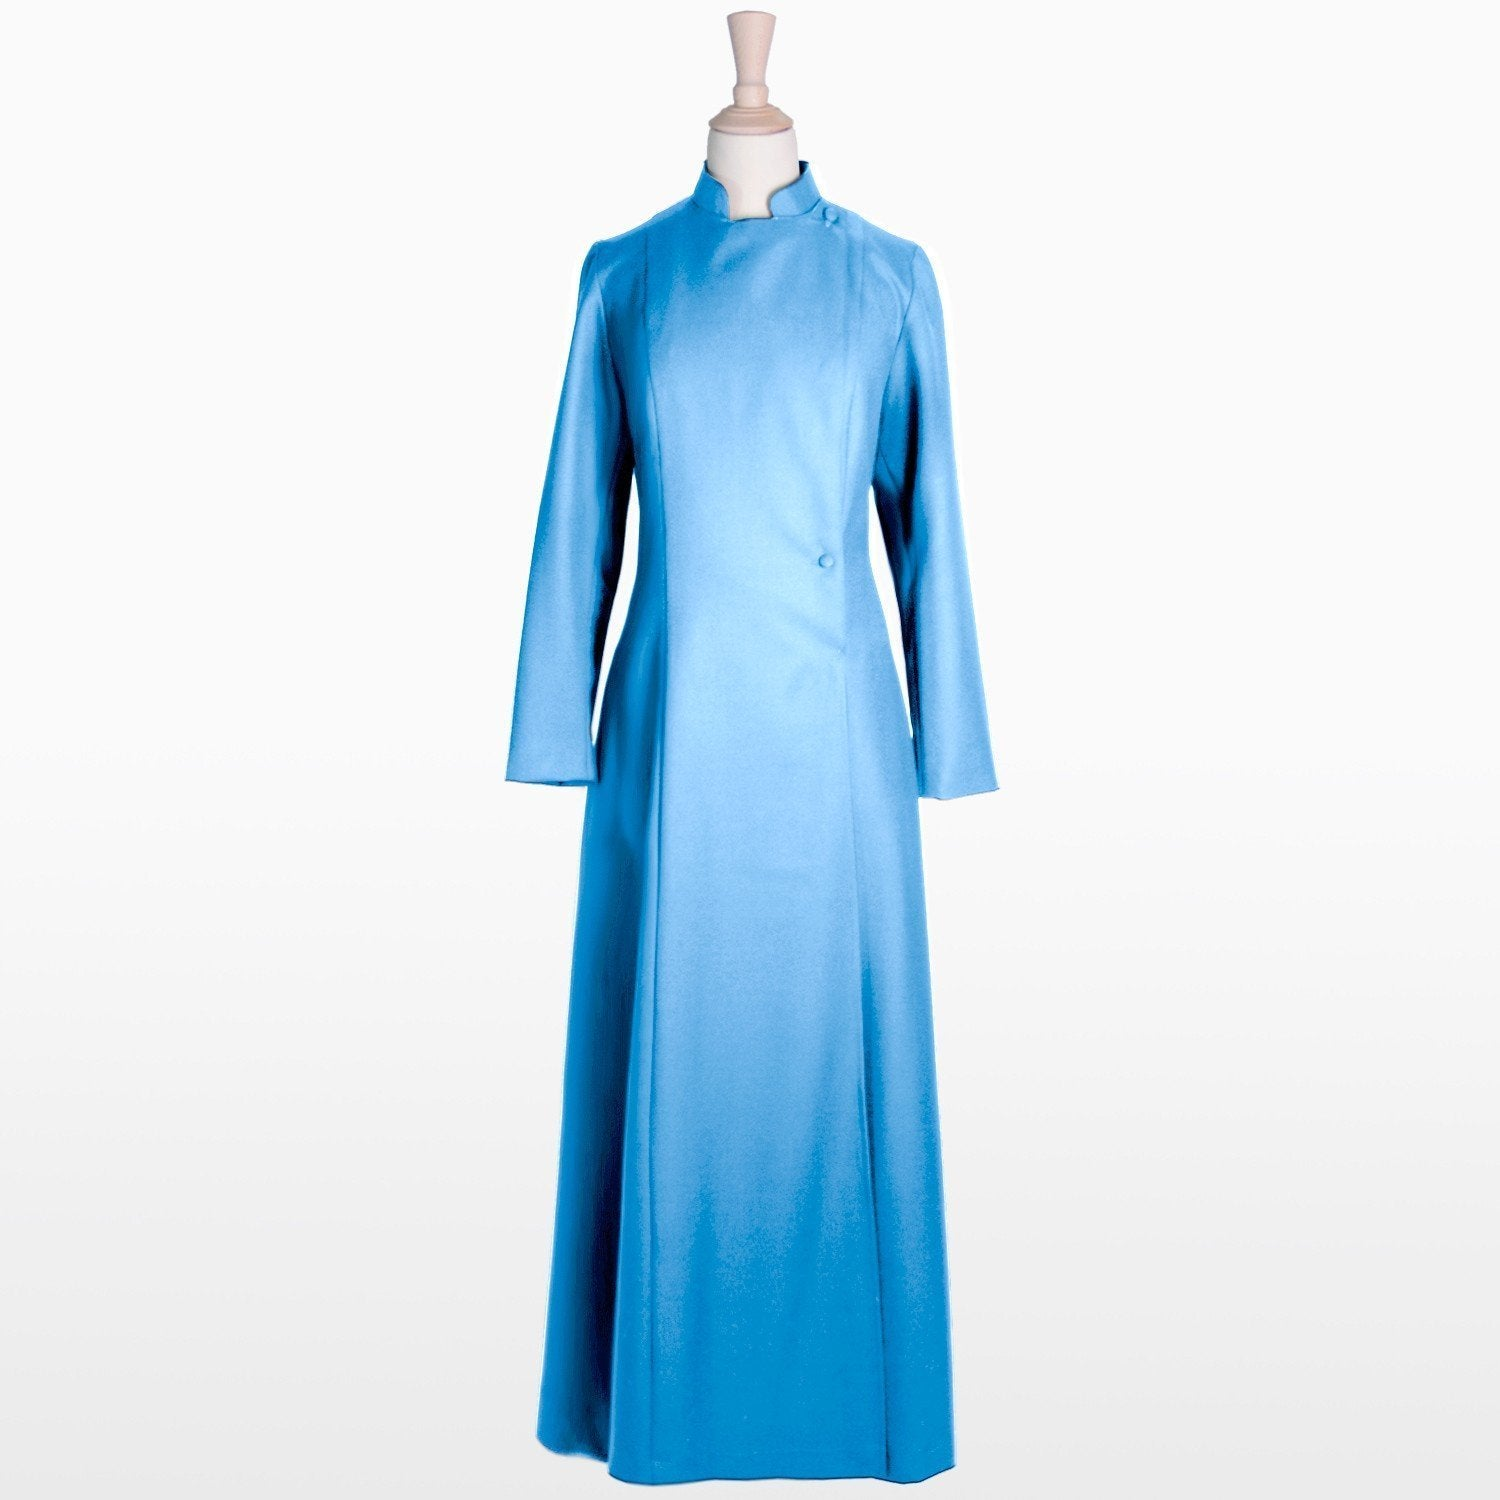 Women's Polyester Double Breasted Choir Cassock - Watts & Co. (international)